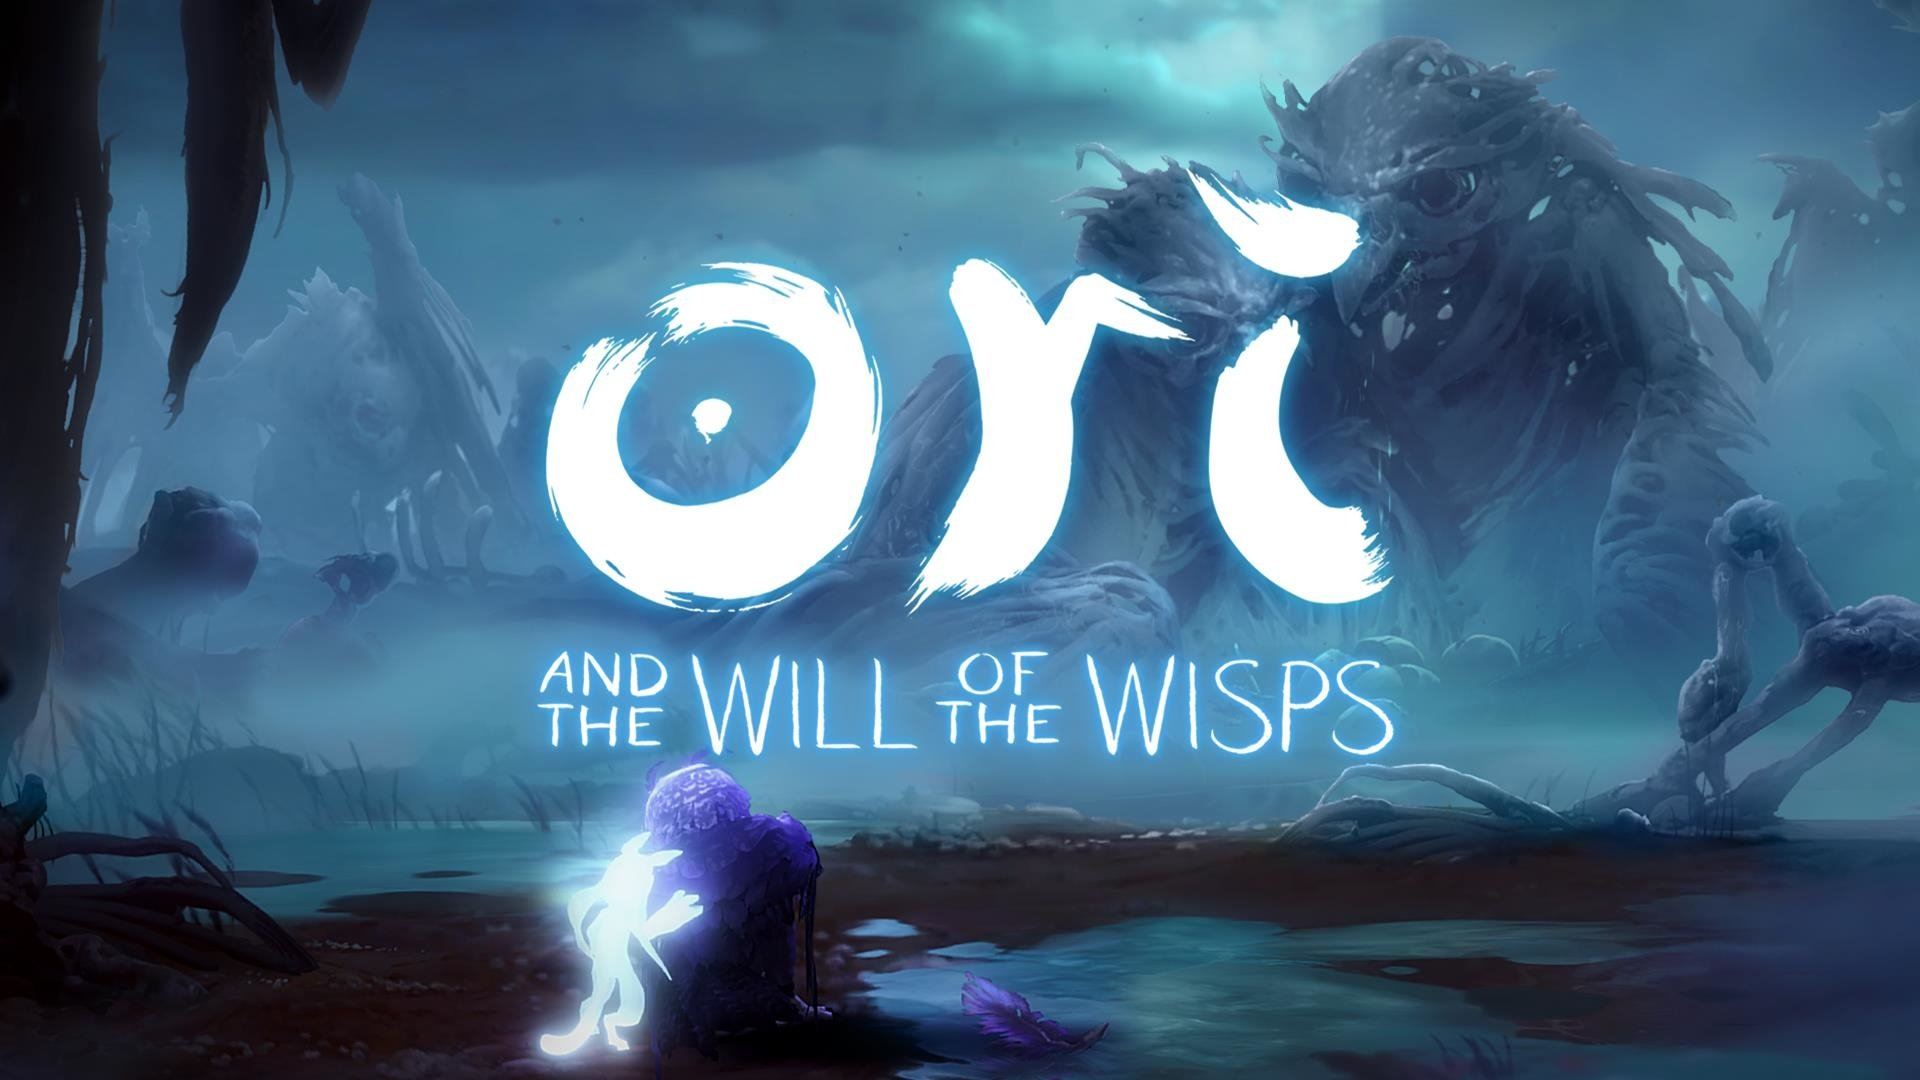 Ori and the Will of the Wisps HD Wallpaper Background Image 1920x1080